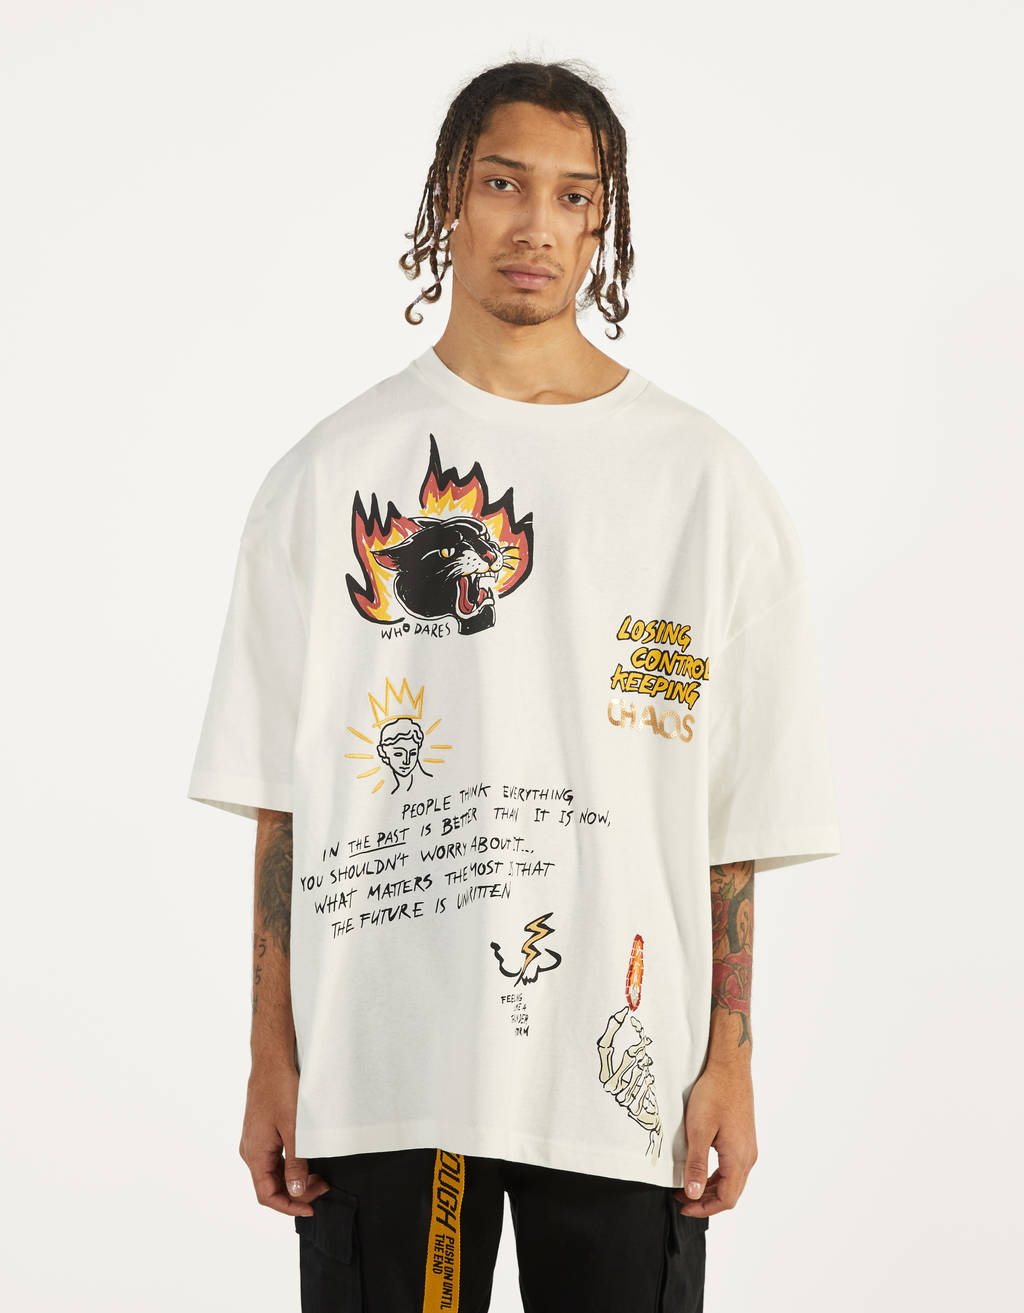 T-shirt with slogan and flame motifs